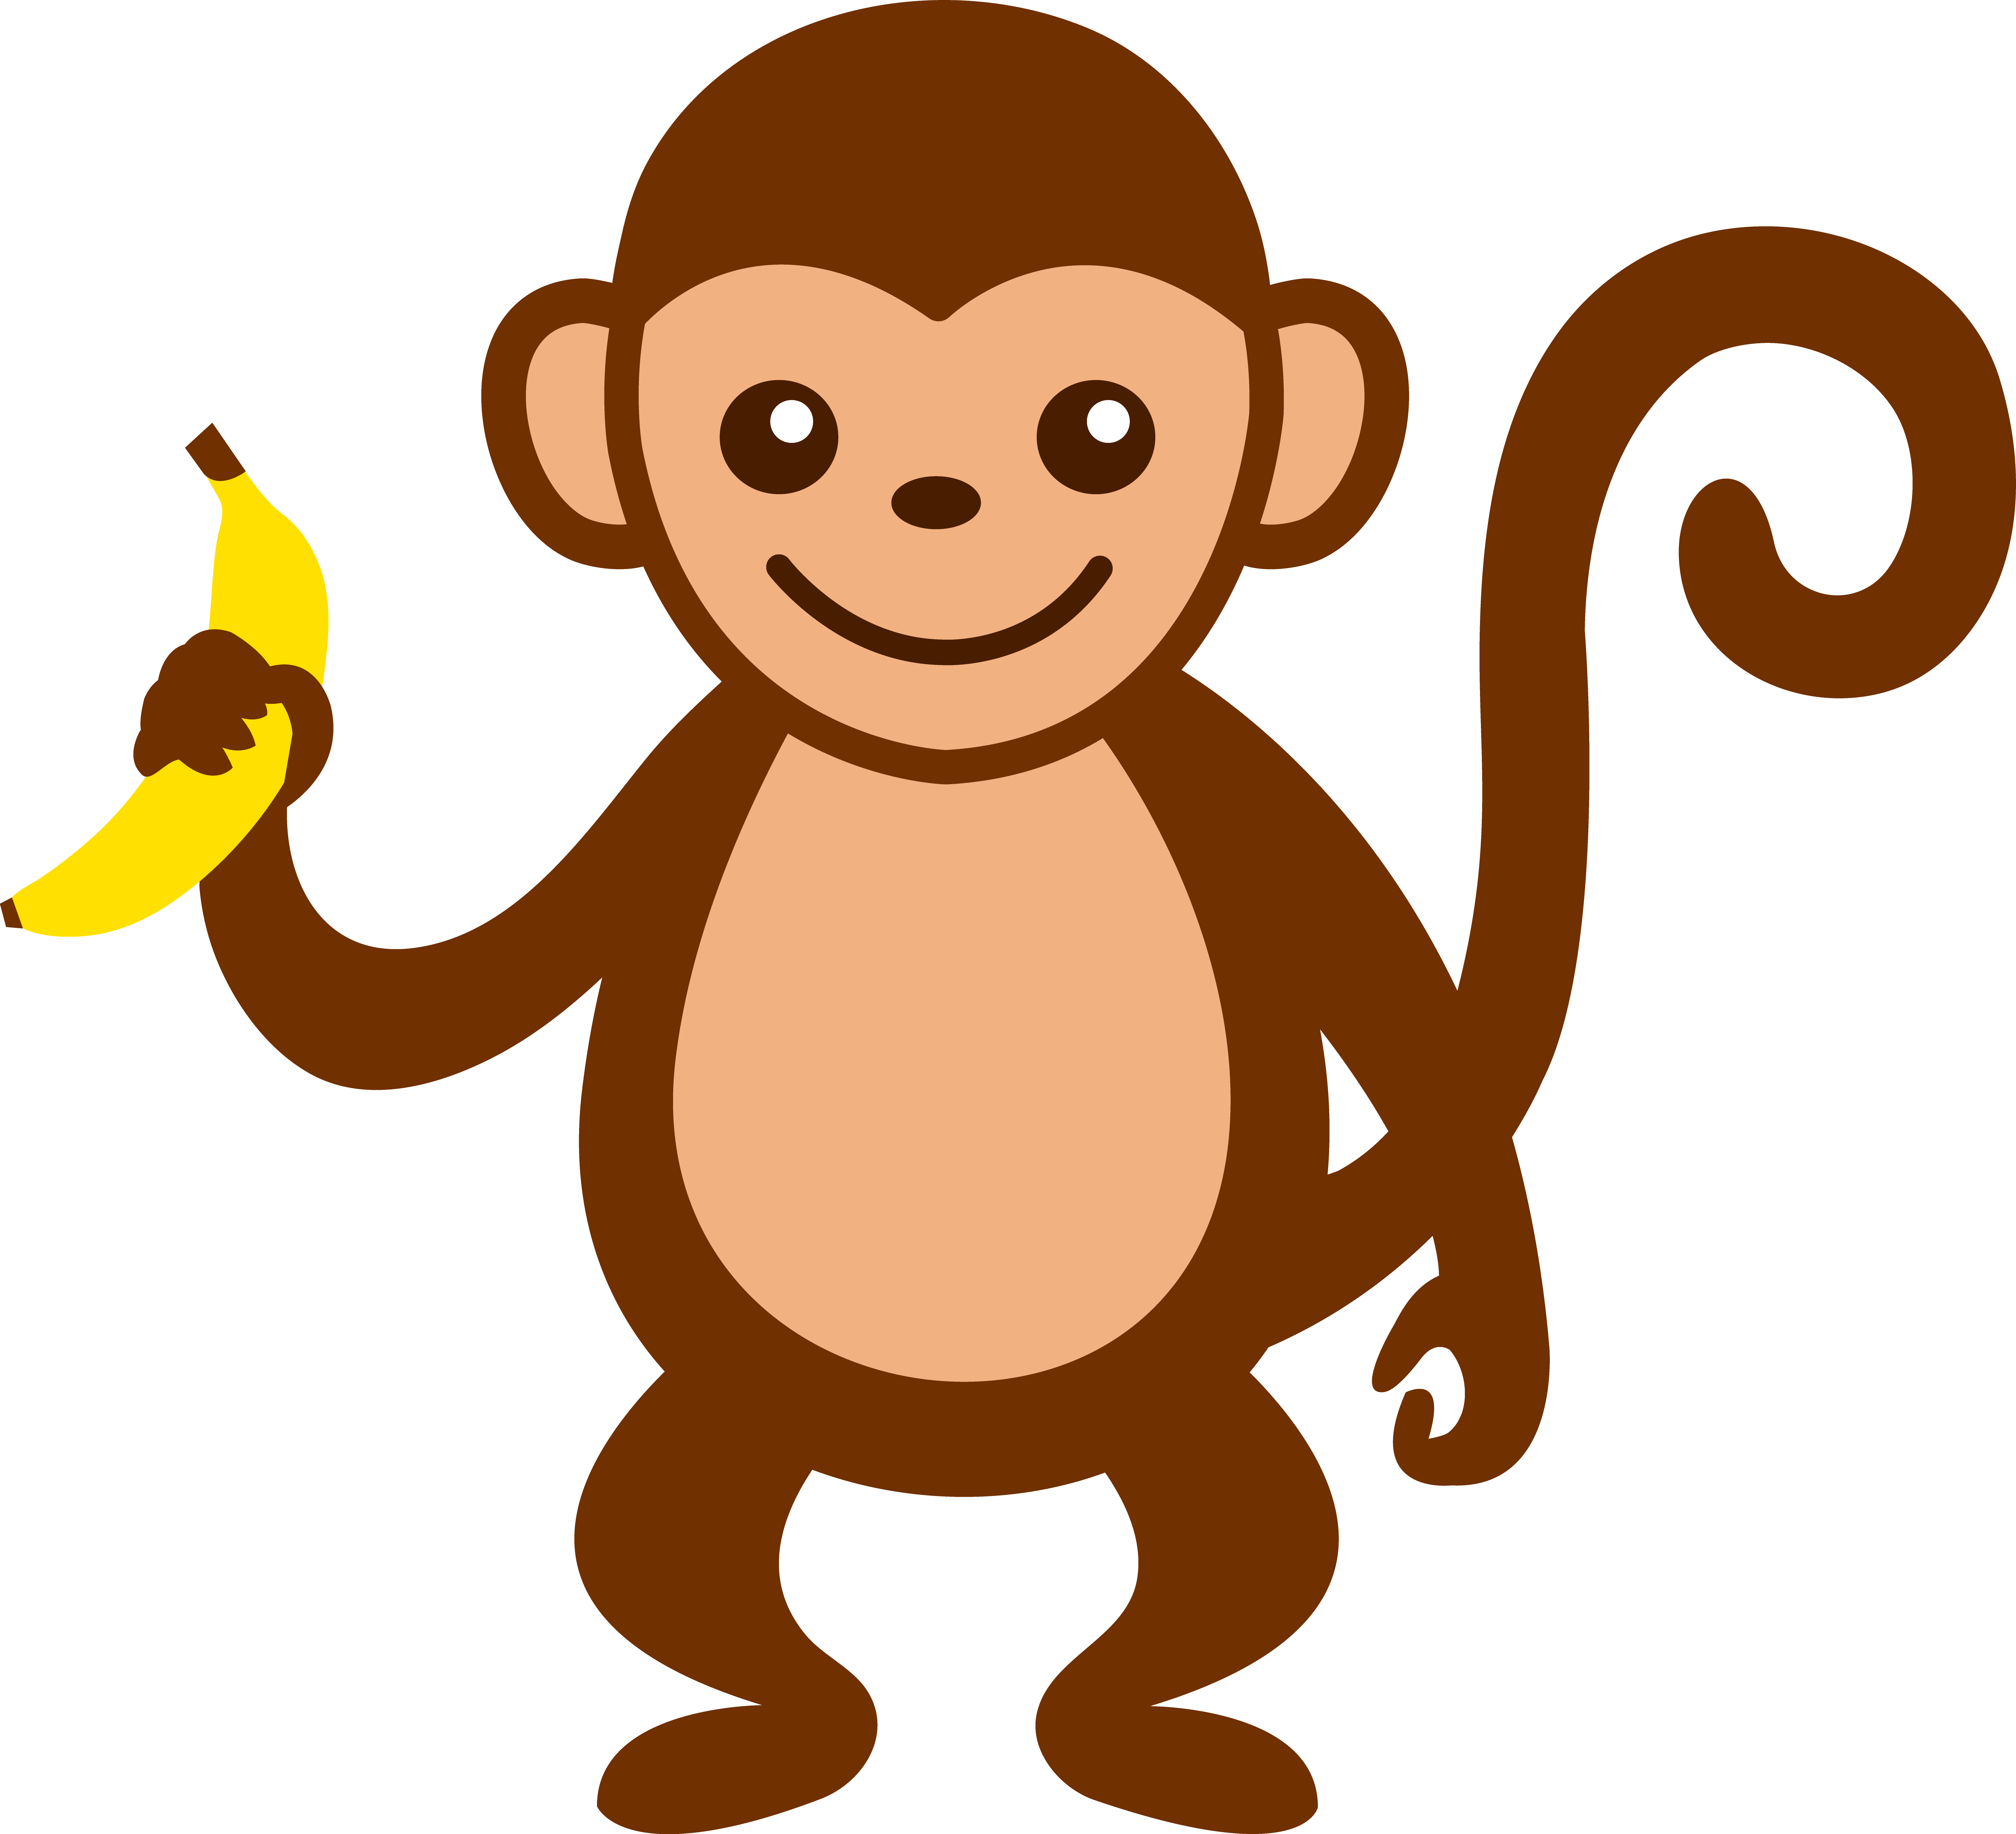 Clipart doctor monkey. Free animated monkeys pictures